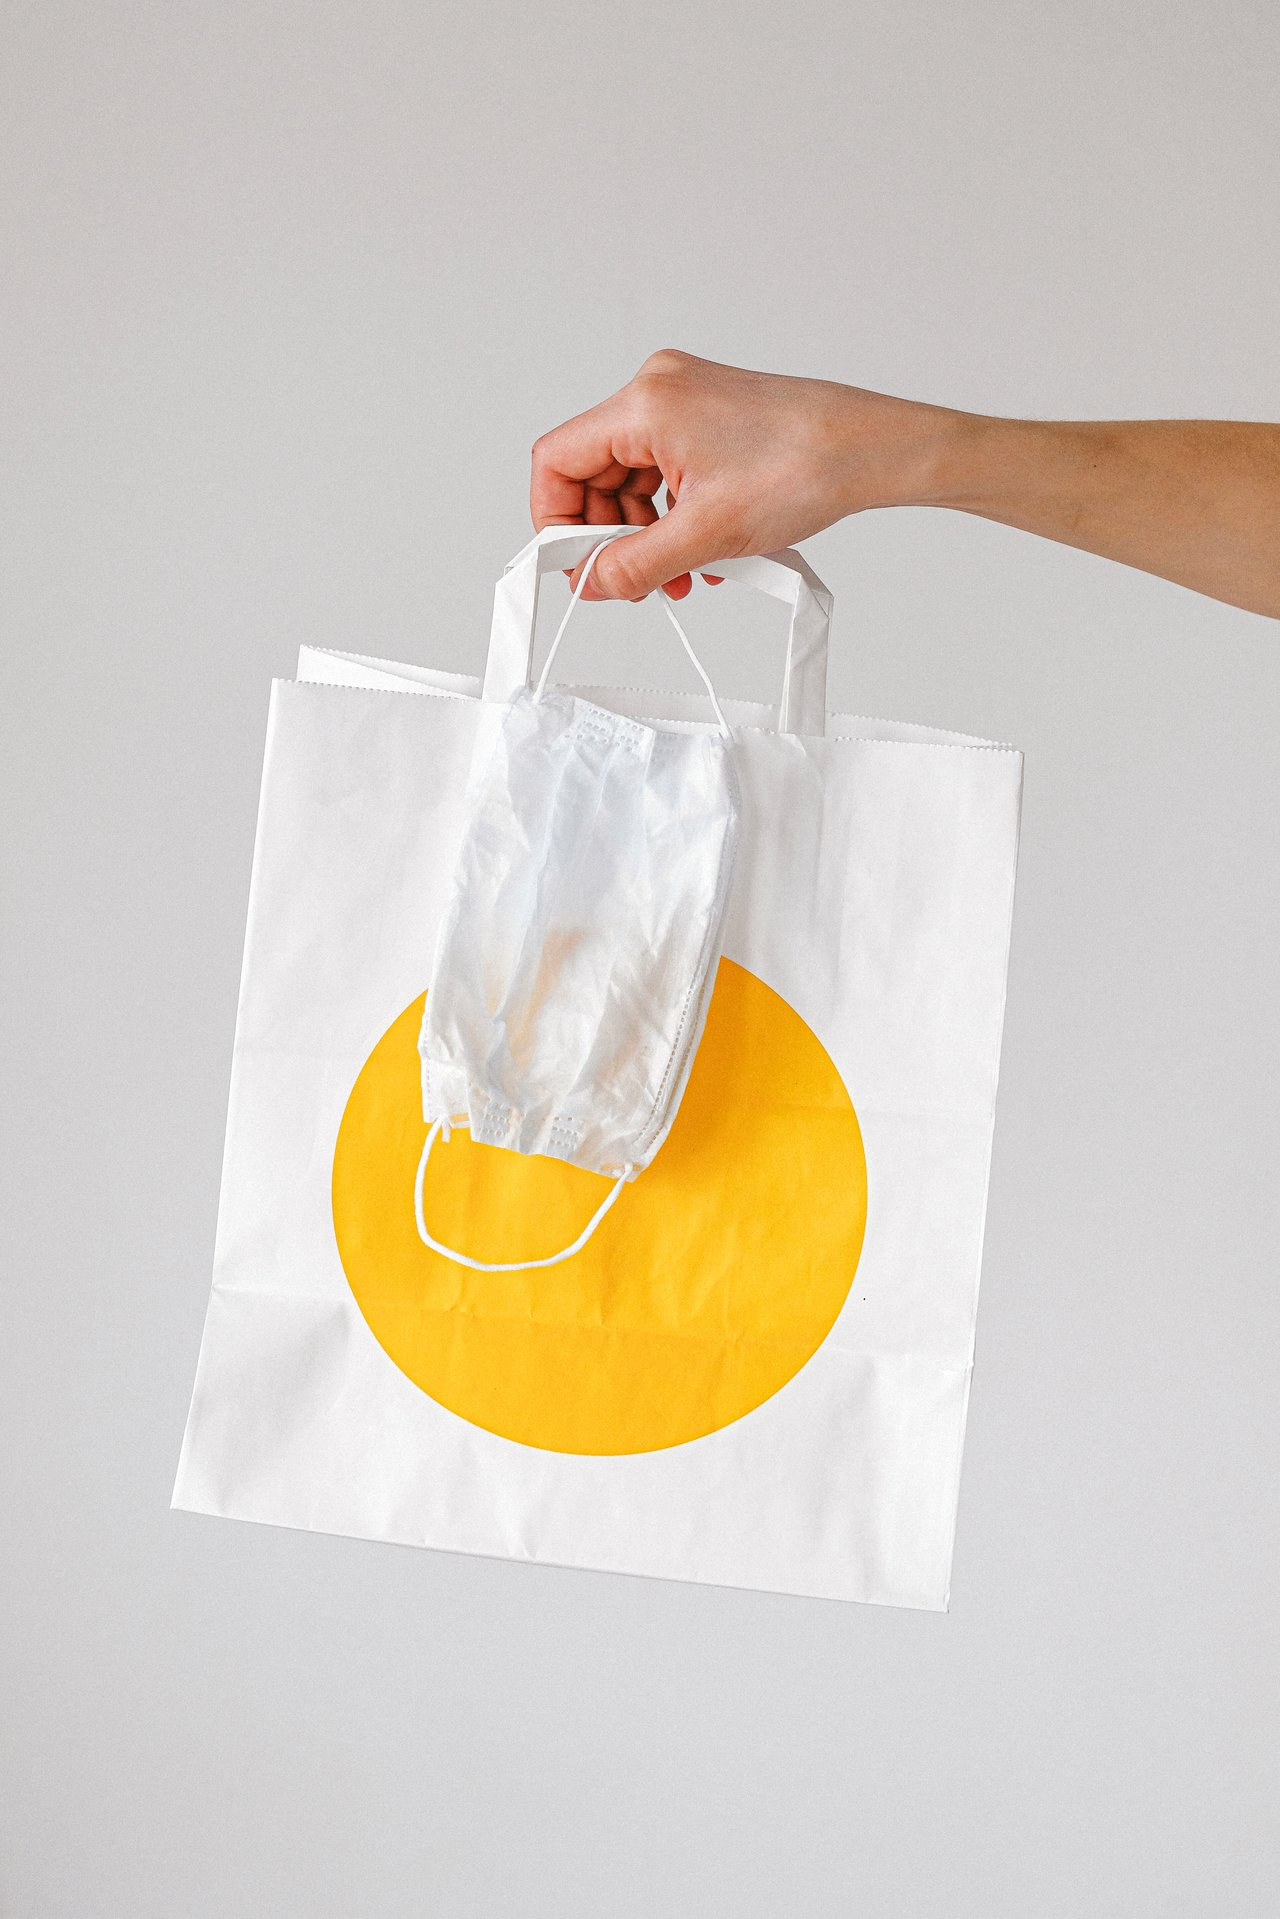 Disinfecting Packages- The Safer Way